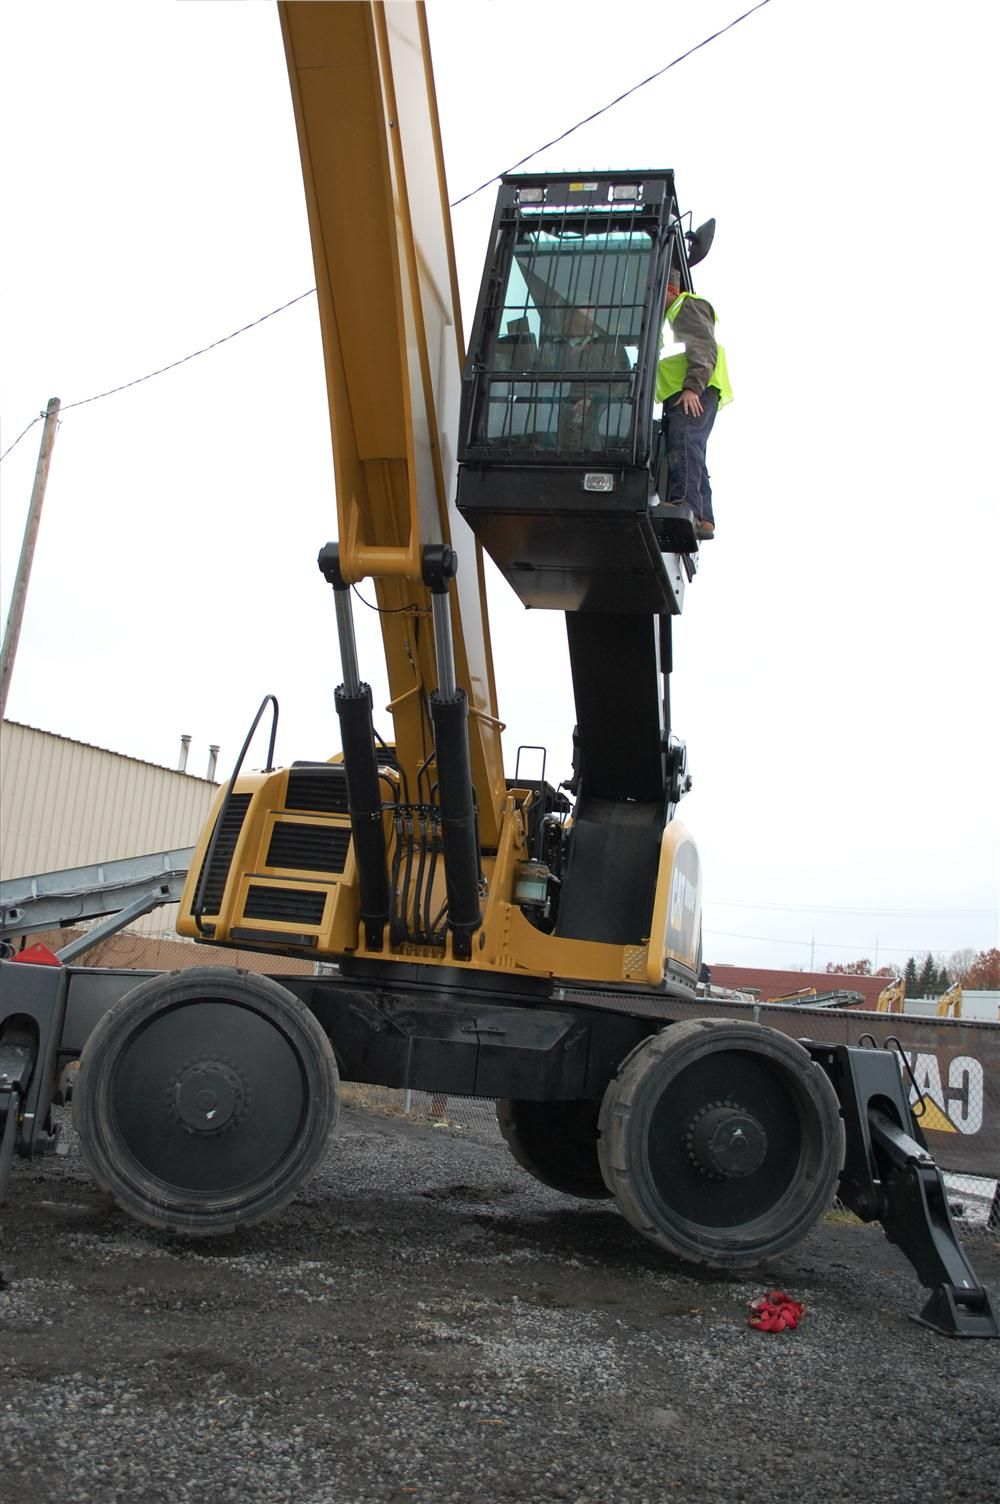 Visitors unfamiliar with scrap equipment still enjoyed the features of the Cat MH3049 material handling (scrap excavator) at work.